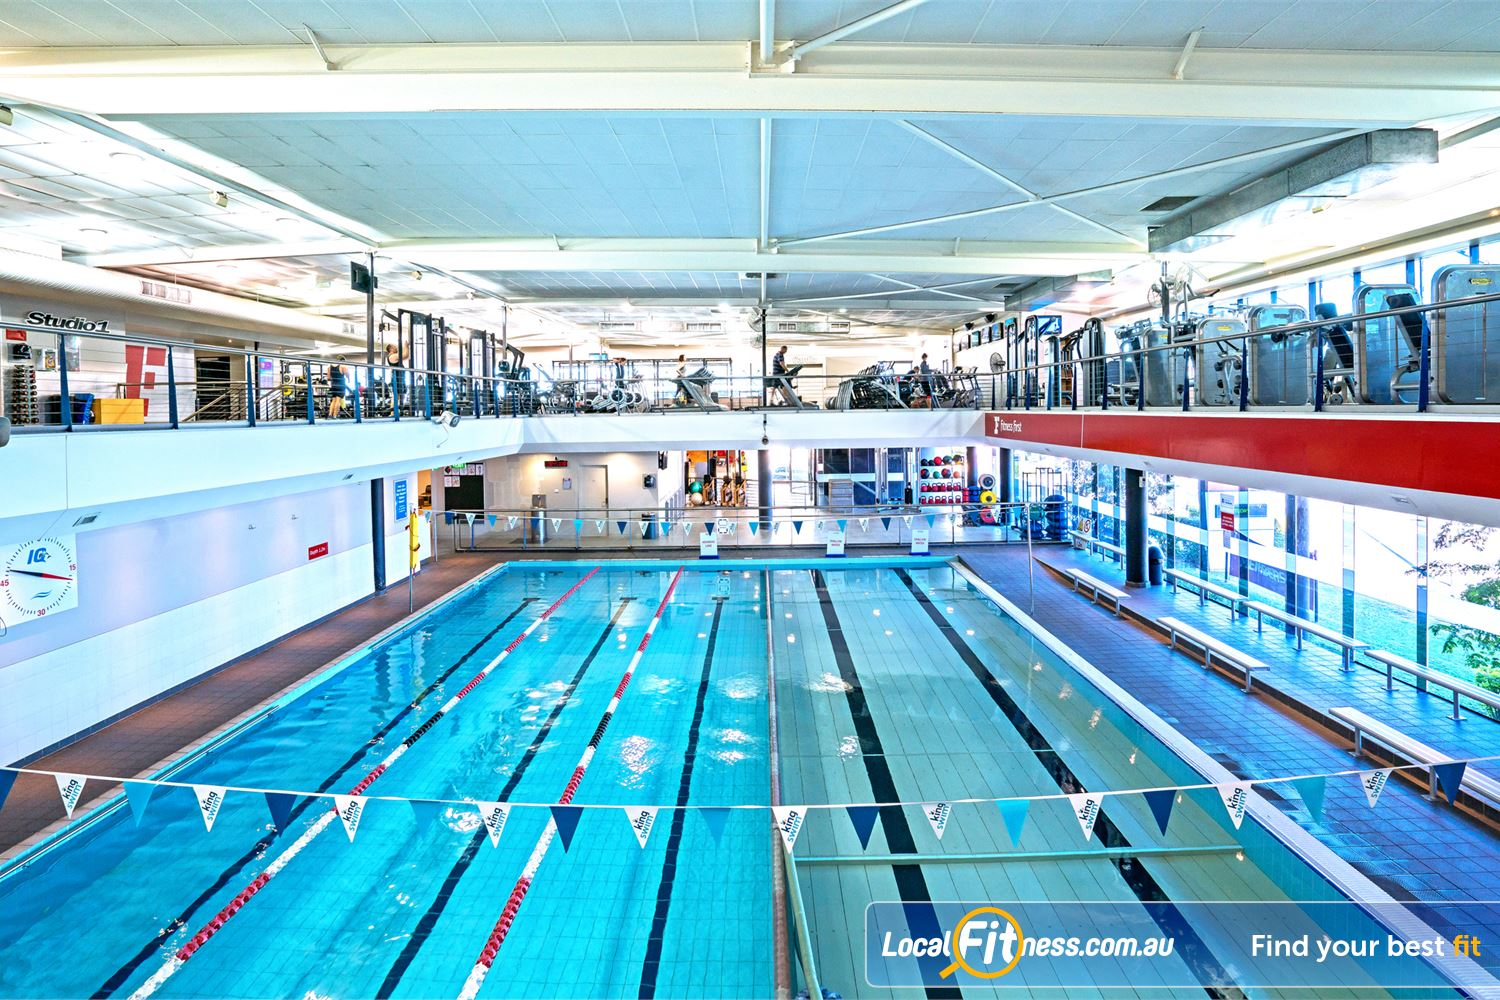 Fitness first swimming pool lutwyche the indoor lutwyche - Fitness first gyms with swimming pools ...